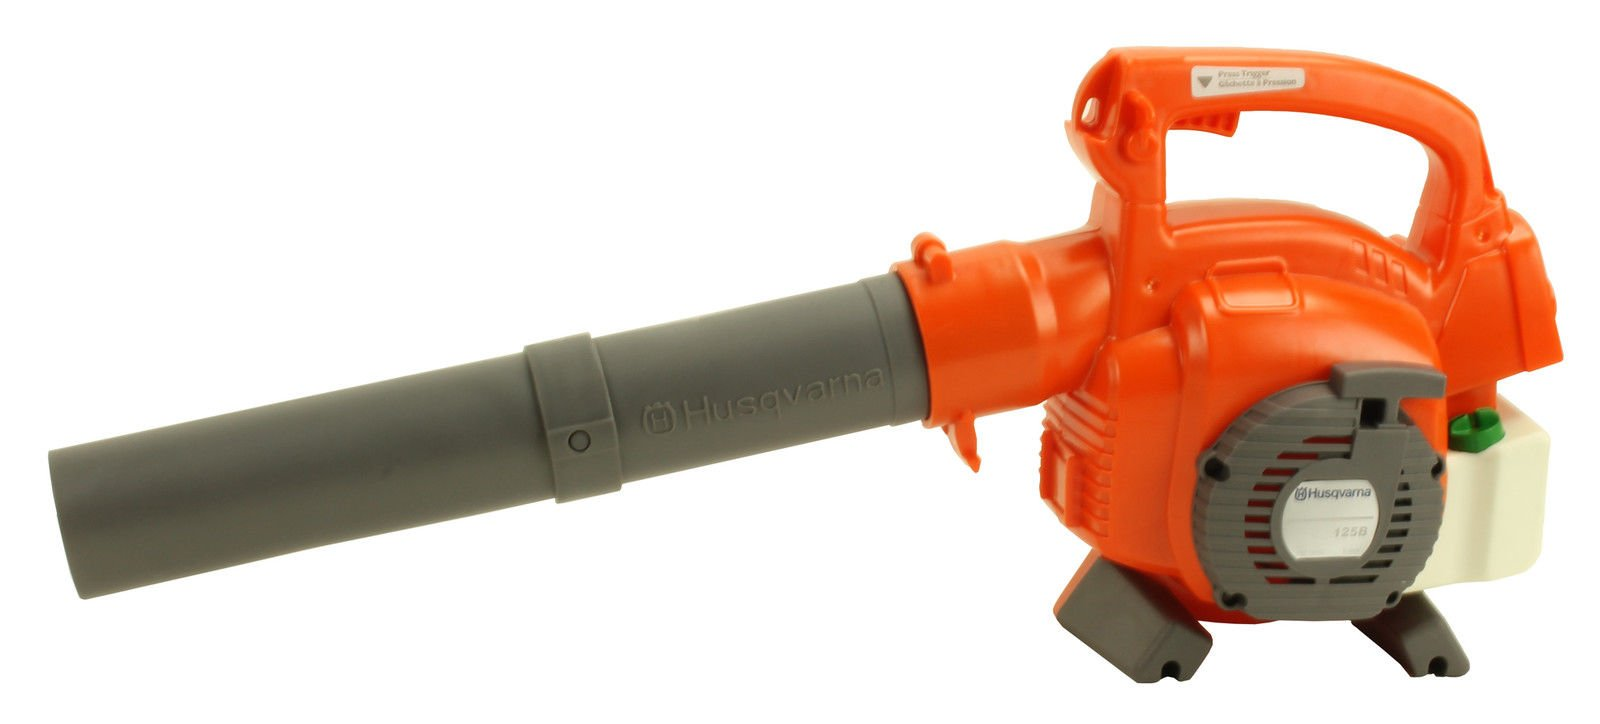 WALLER PAA Toy Kids Battery Operated Tools - Chainsaw, Blower, and Trimmers (Leaf Blower)